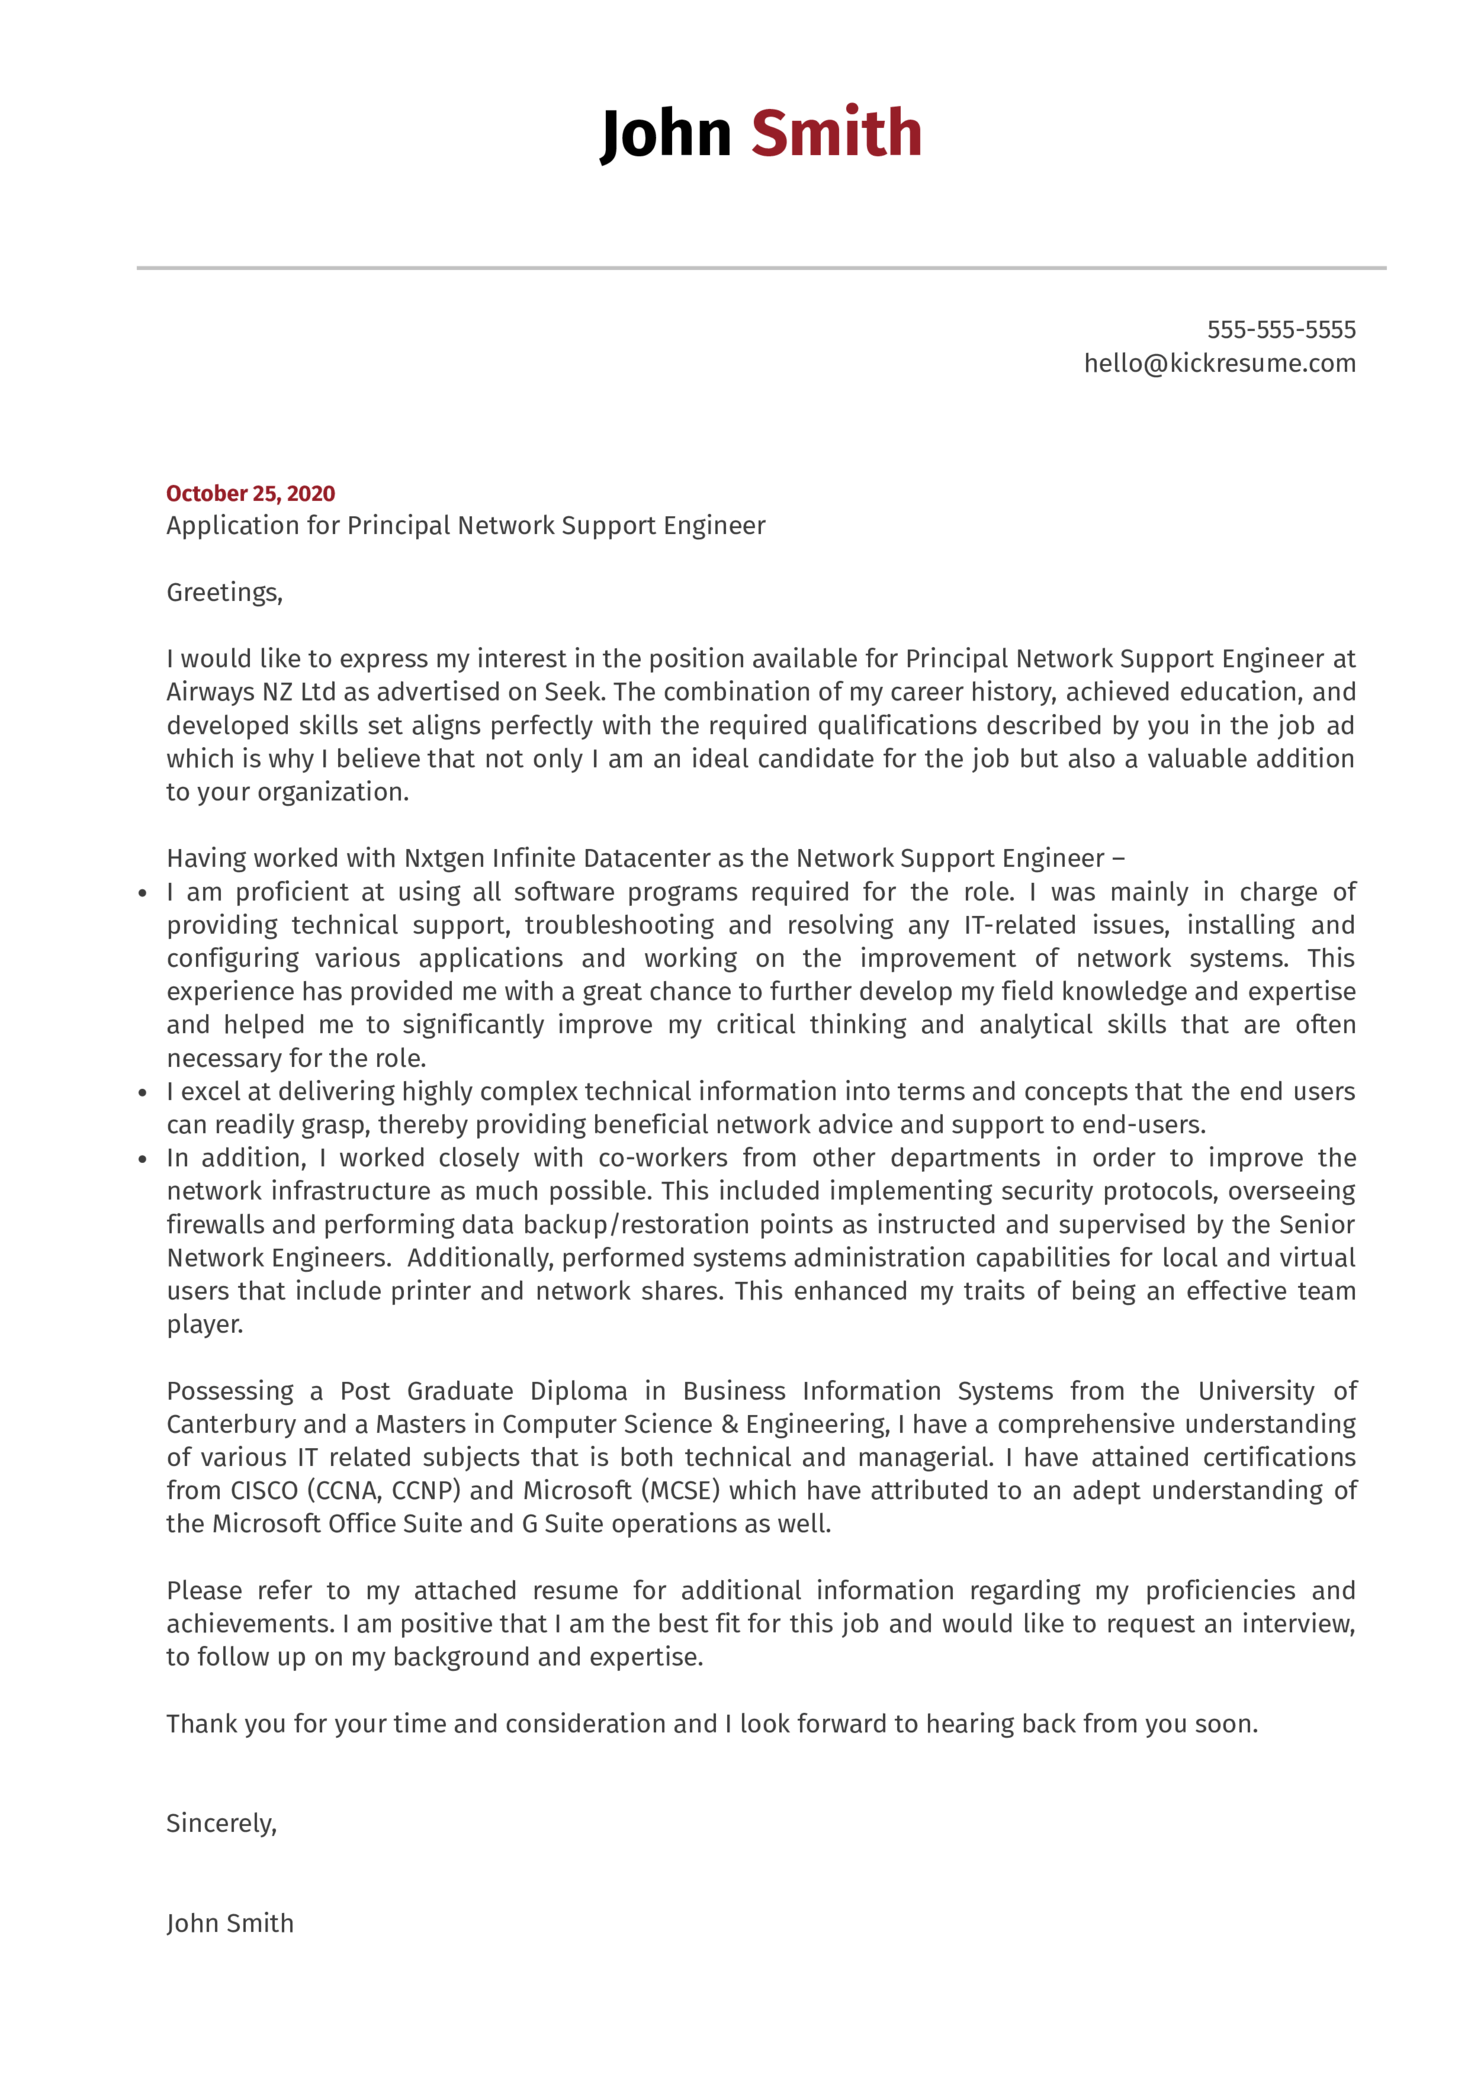 Principal Network Support Engineer Cover Letter Sample